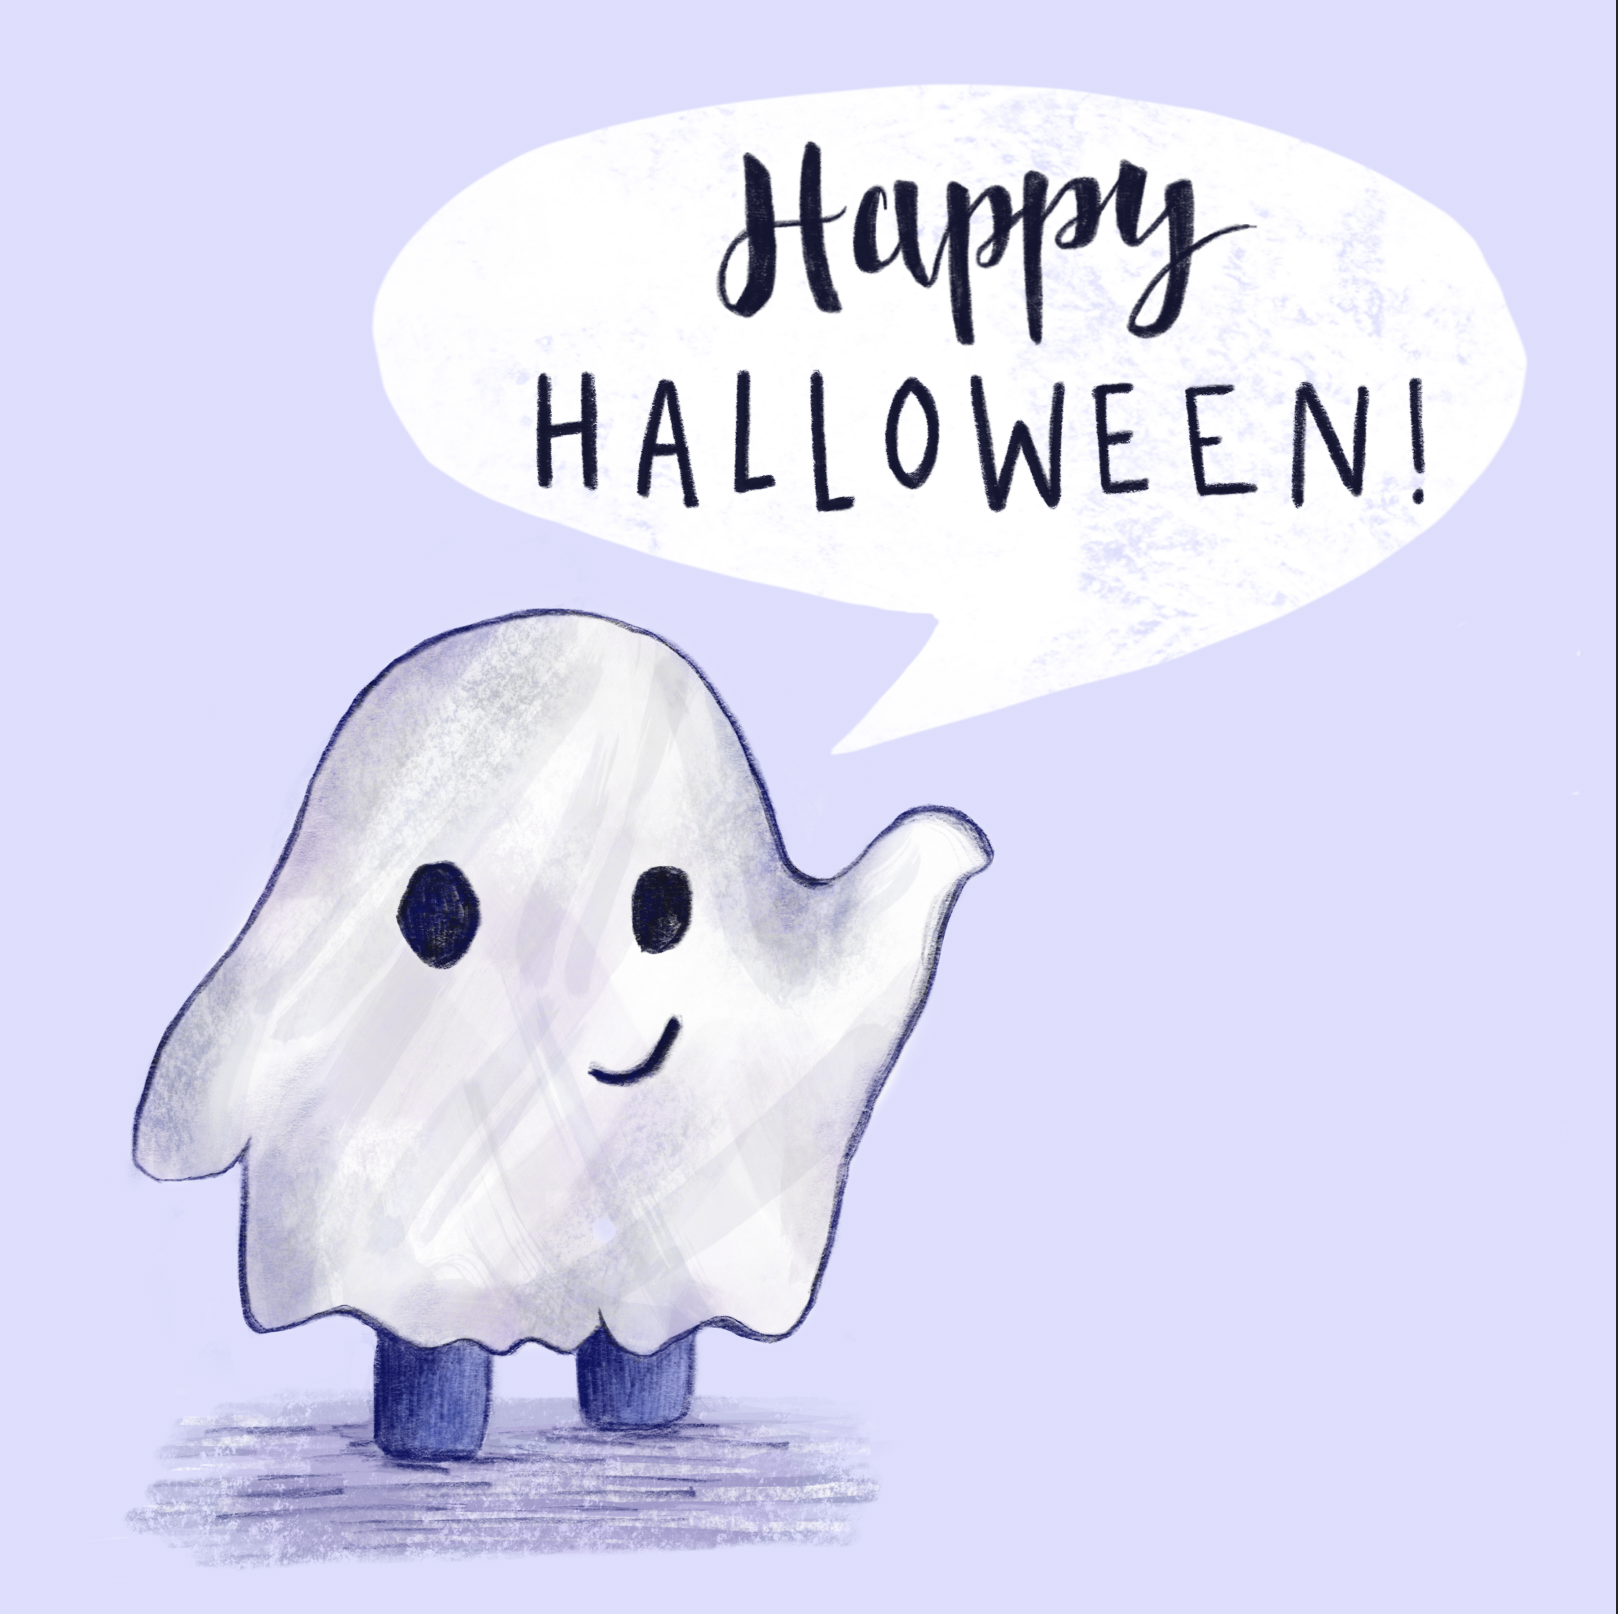 HAPPY HALLOWEEN! Do you have fun Halloween plans? Let us